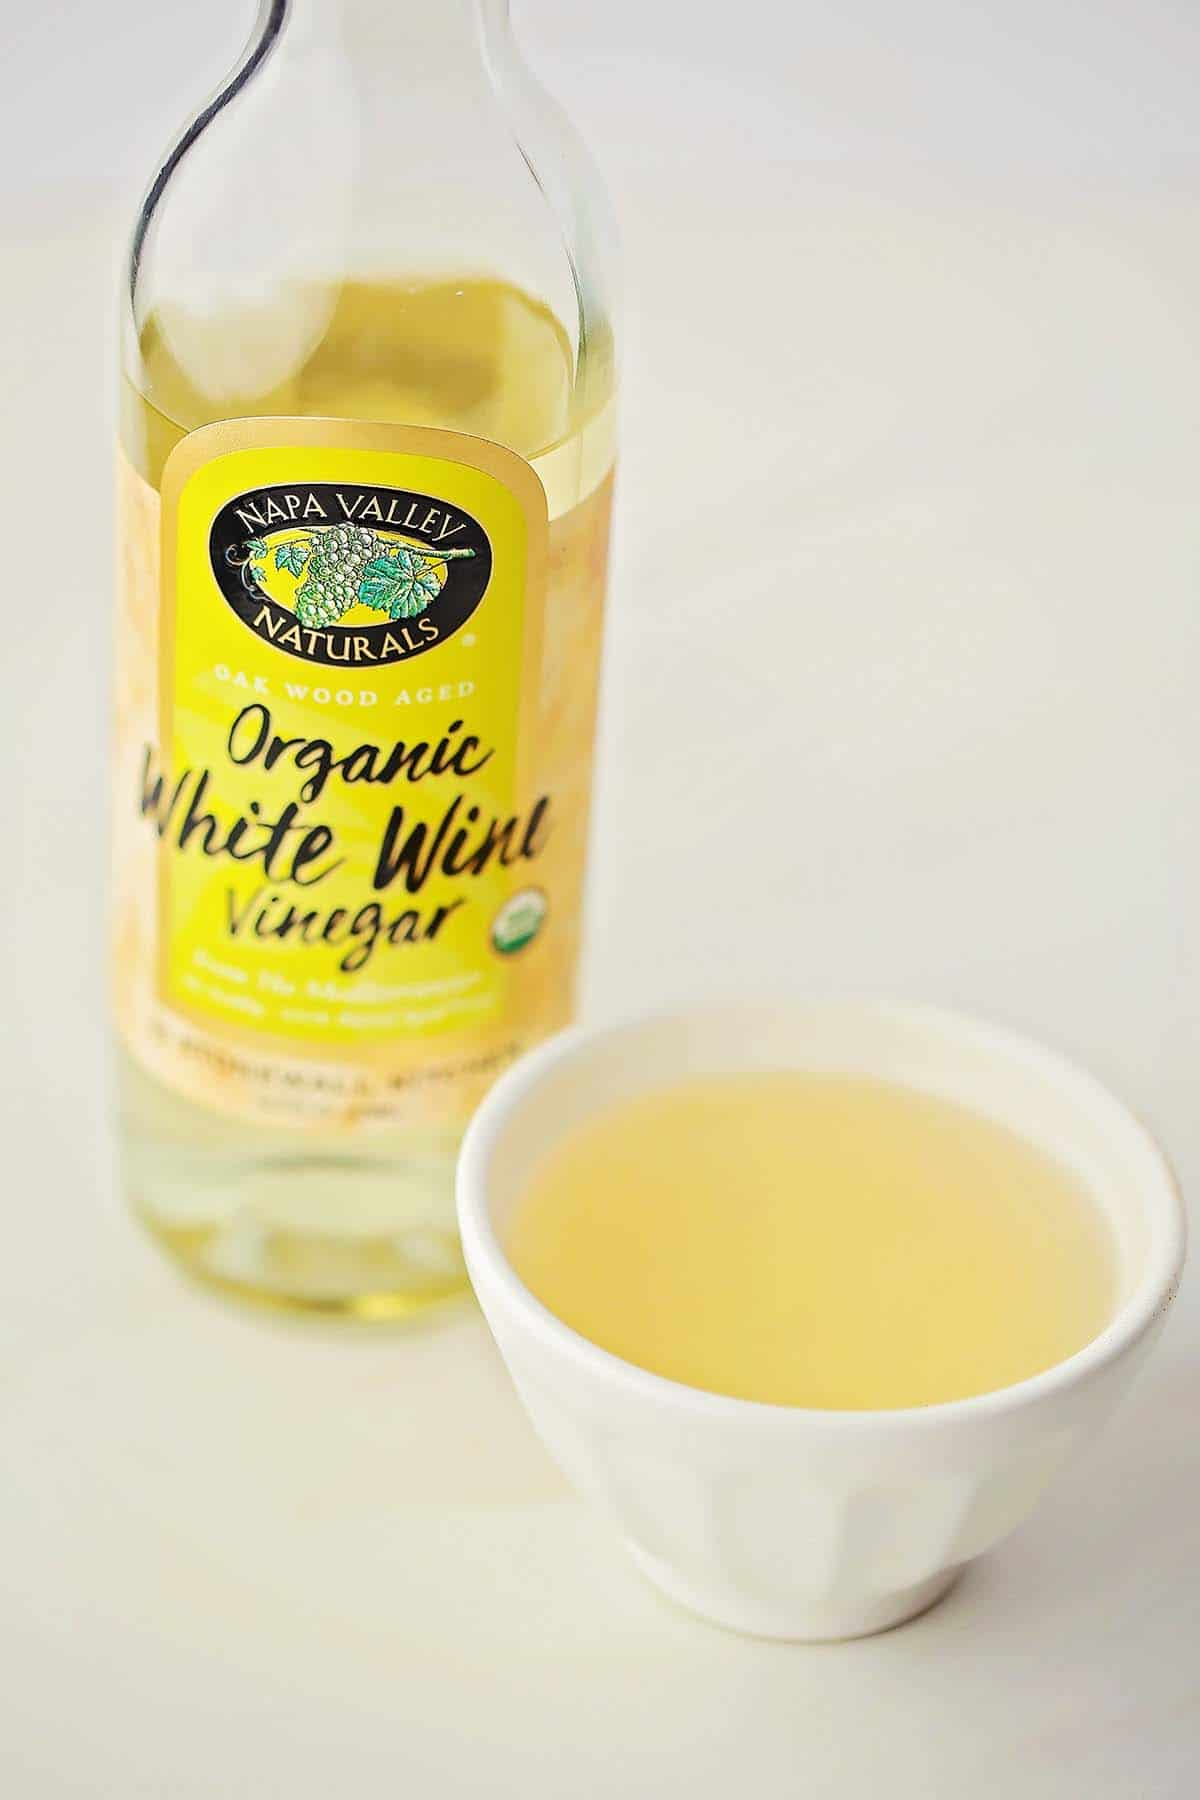 bottle with white wine vinegar and small dish filled with yellow liquid